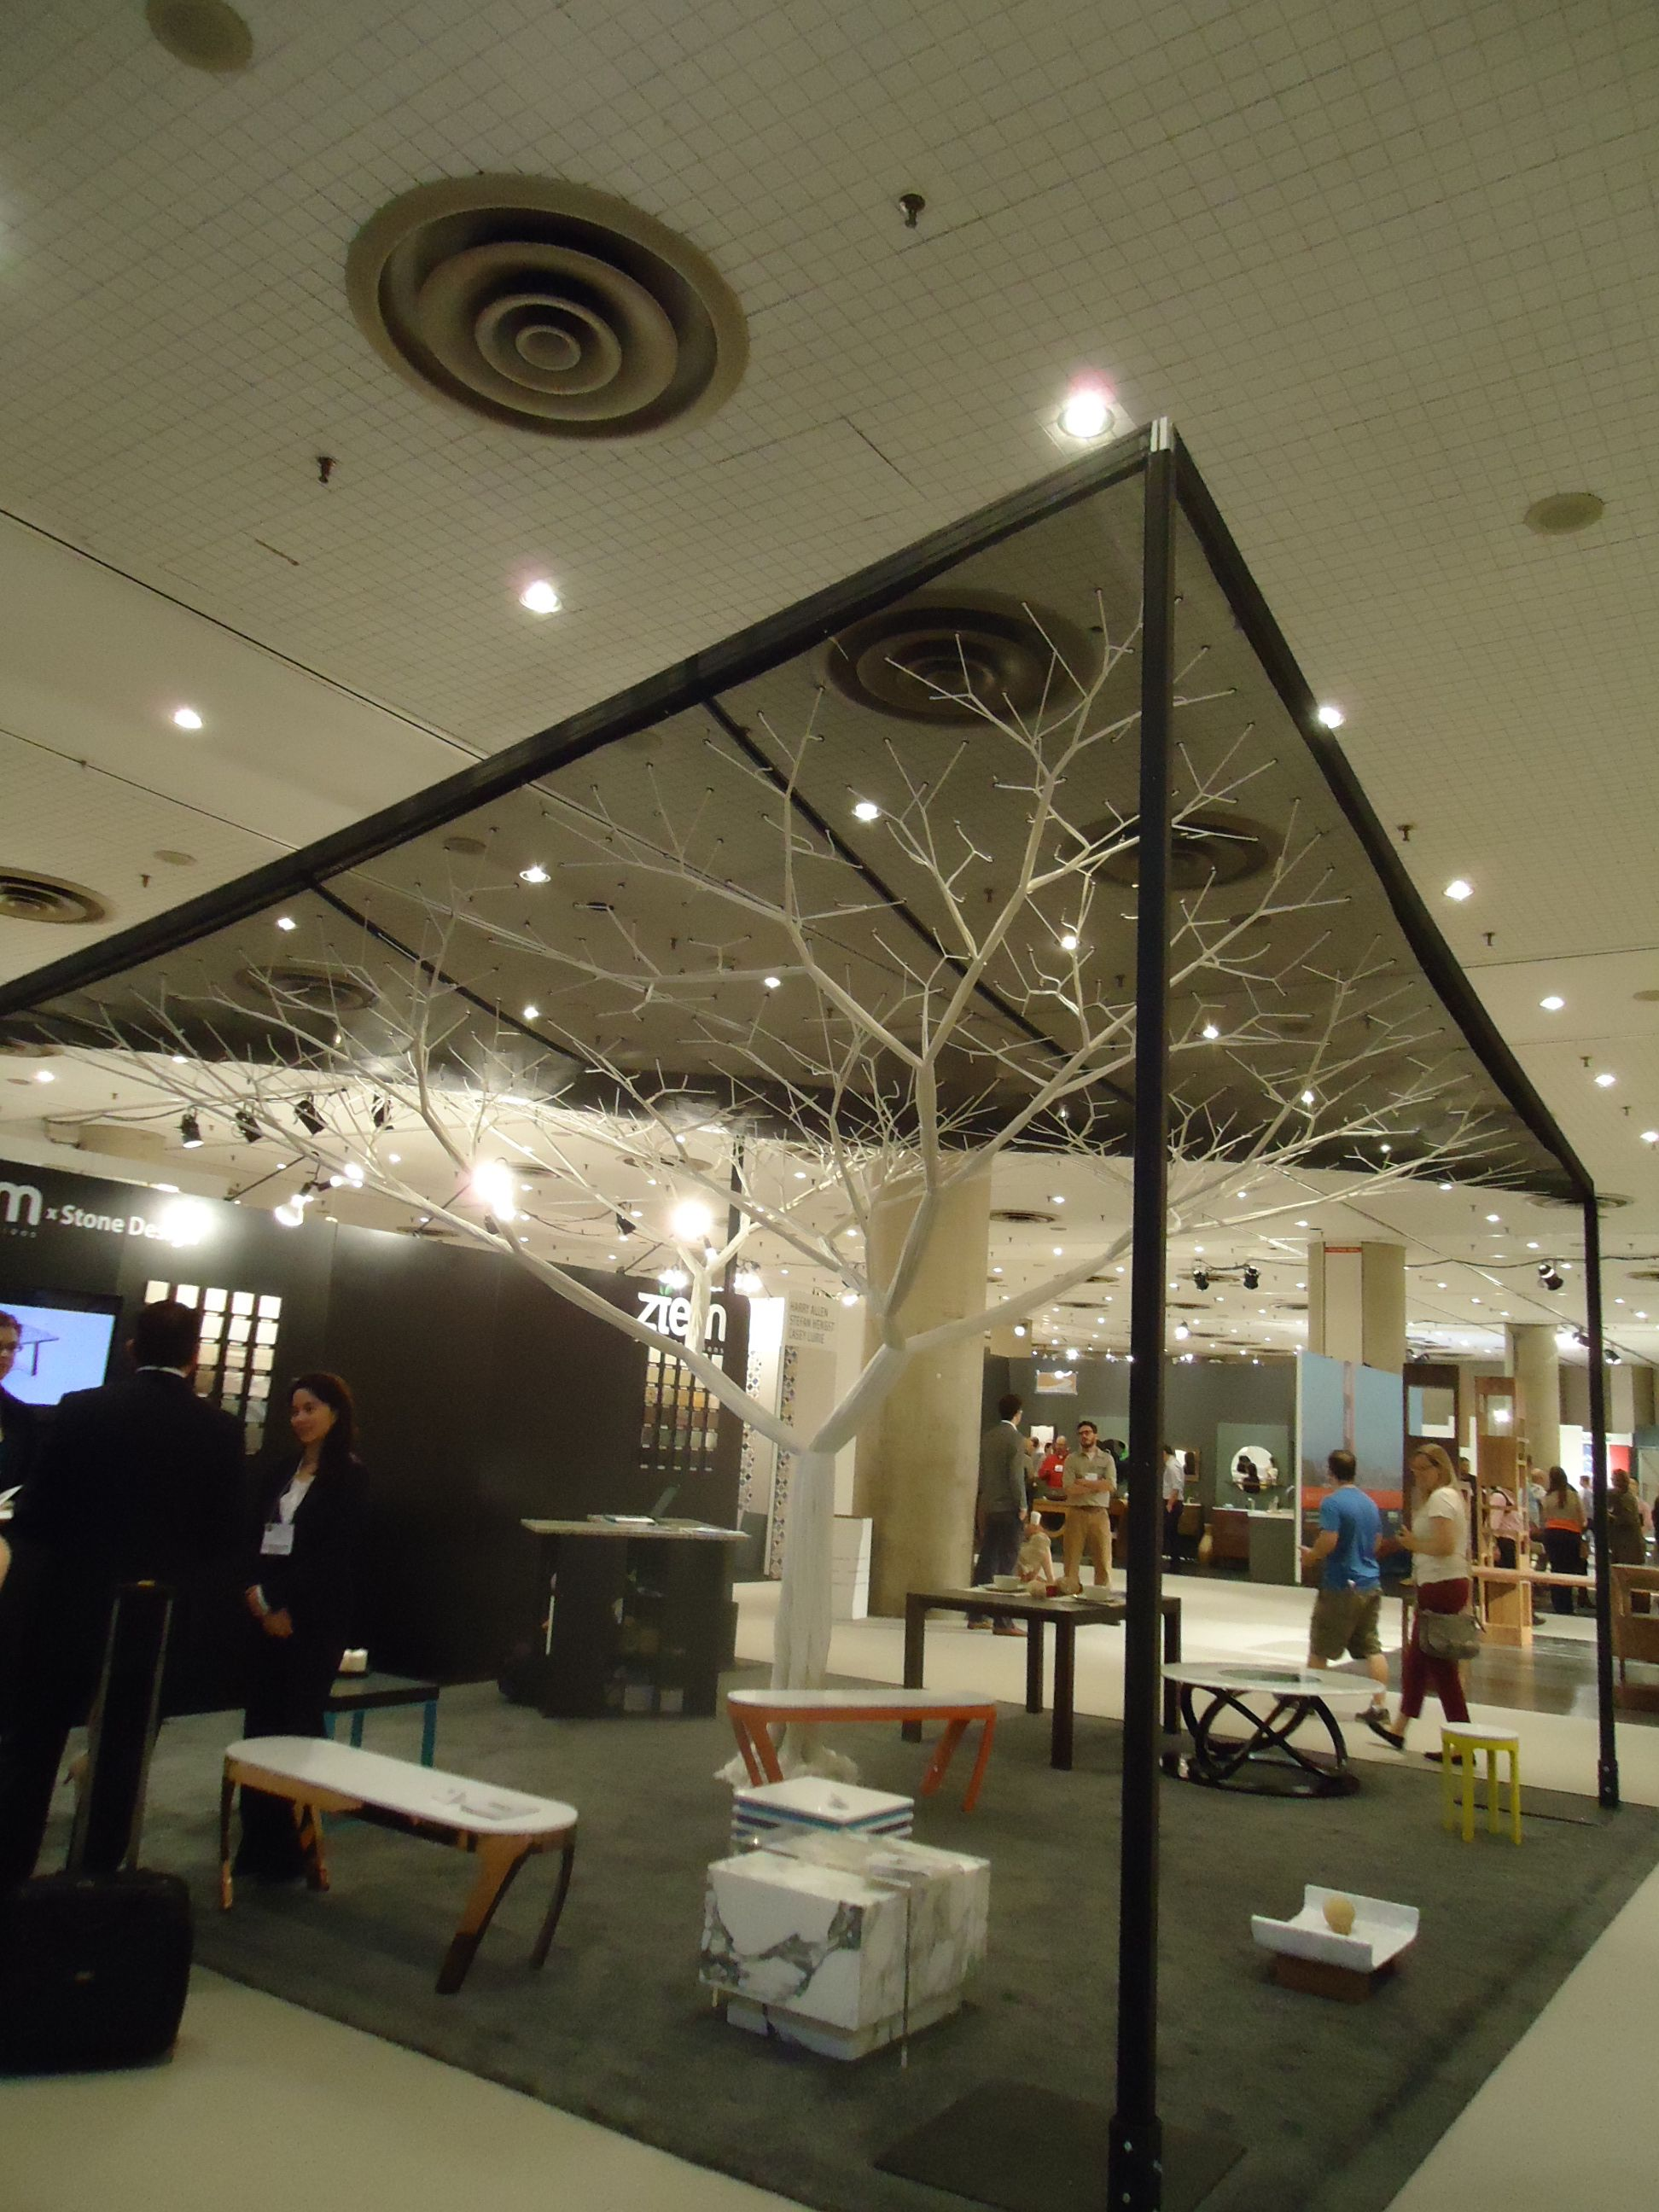 Exhibition Booth Design Award : Trade show booth idea that could be great for displaying